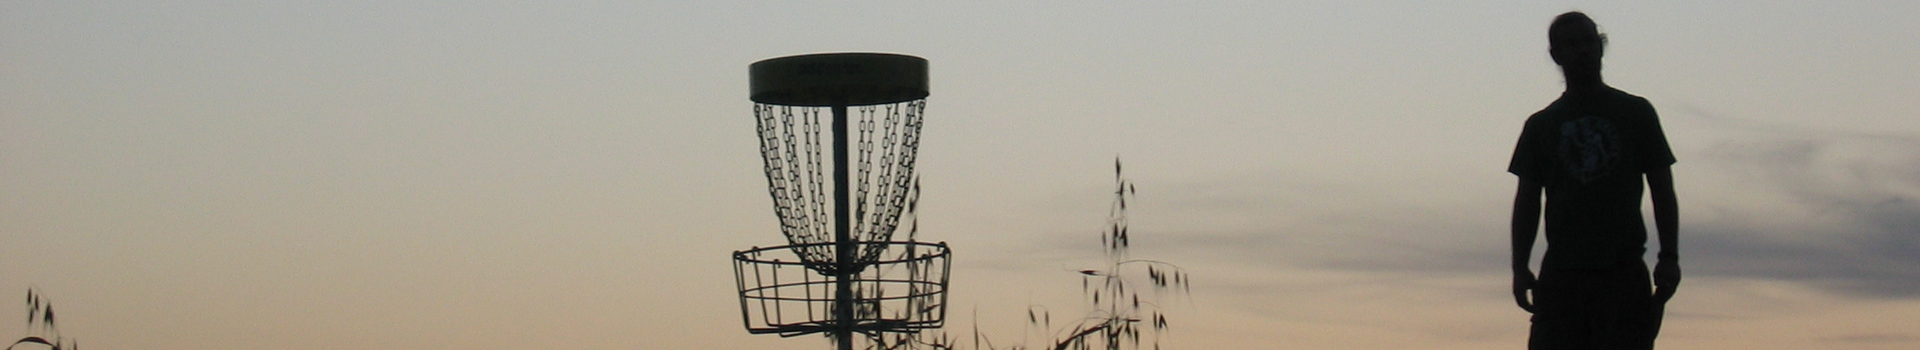 turpin meadow ranch disc golf